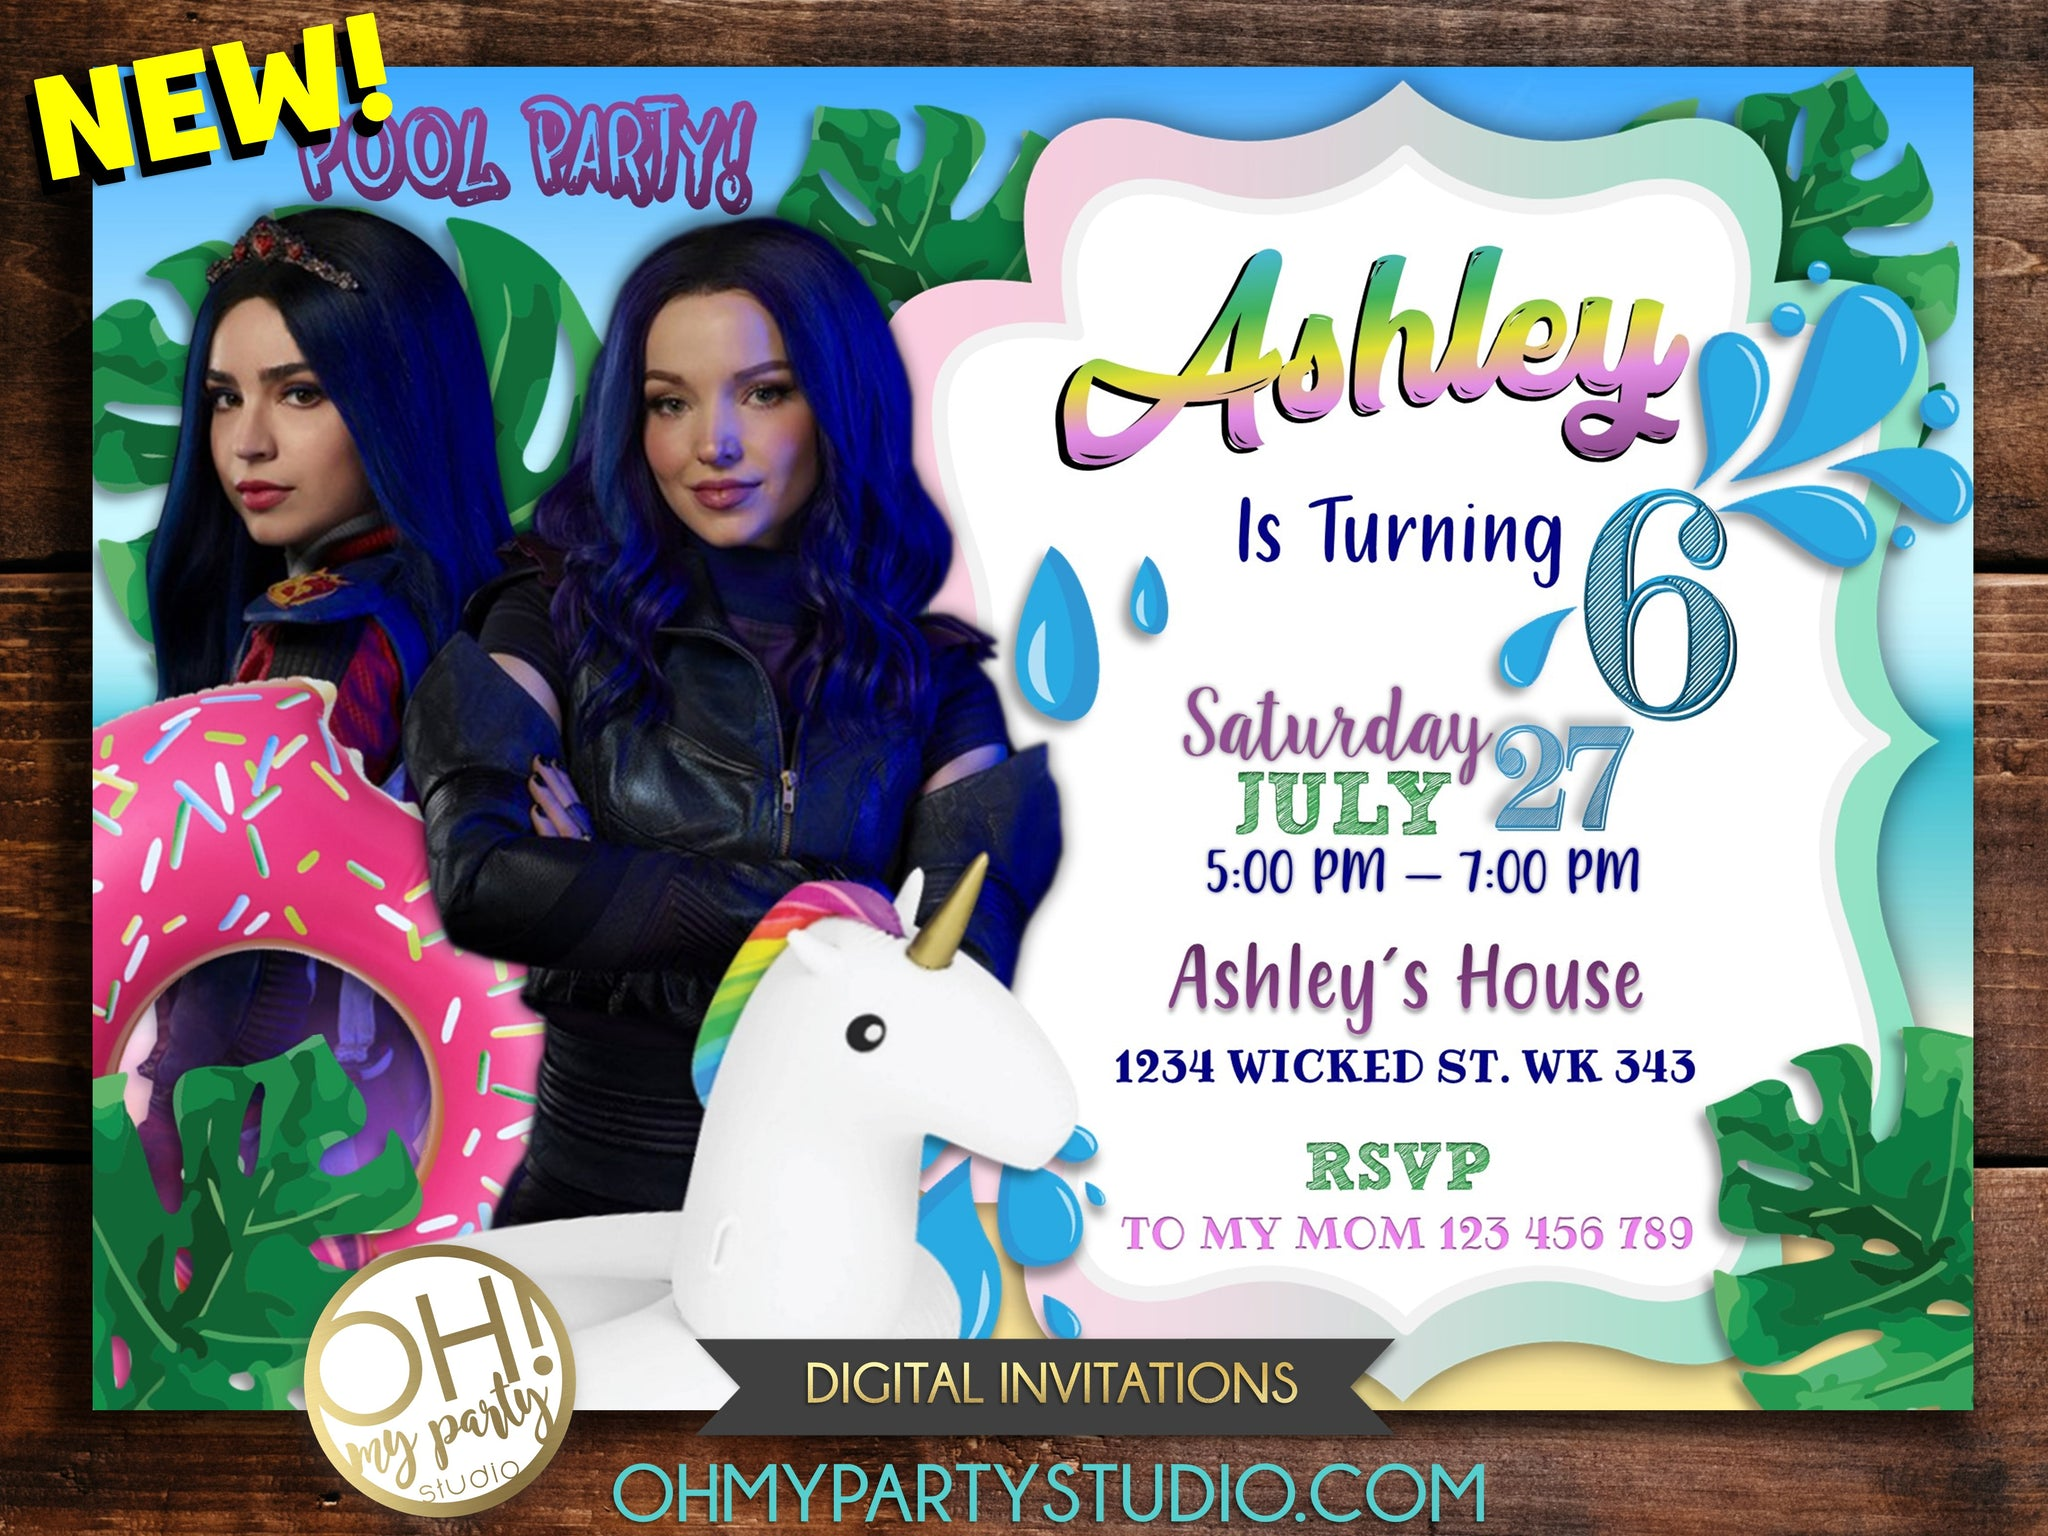 DESCENDANTS 3 BIRTHDAY PARTY INVITATION, DESCENDANTS 3 PARTY, DESCENDANTS 3 INVITATION, DESCENDANTS 3 INVITATIONS, DESCENDANTS 3 PARTY, DESCENDANTS 3 BIRTHDAY, DESDENDANTS INVITATION, DESCENDANTS 3 POOL PARTY, DESCENDANTS POOL PARTY, DESCENDANTS 3 PARTY IDEAS, DESCENDANTS POOL, DESCENDANTS 3 PARTY THEME, DESCENDANTS POOL PARTY INVITATION